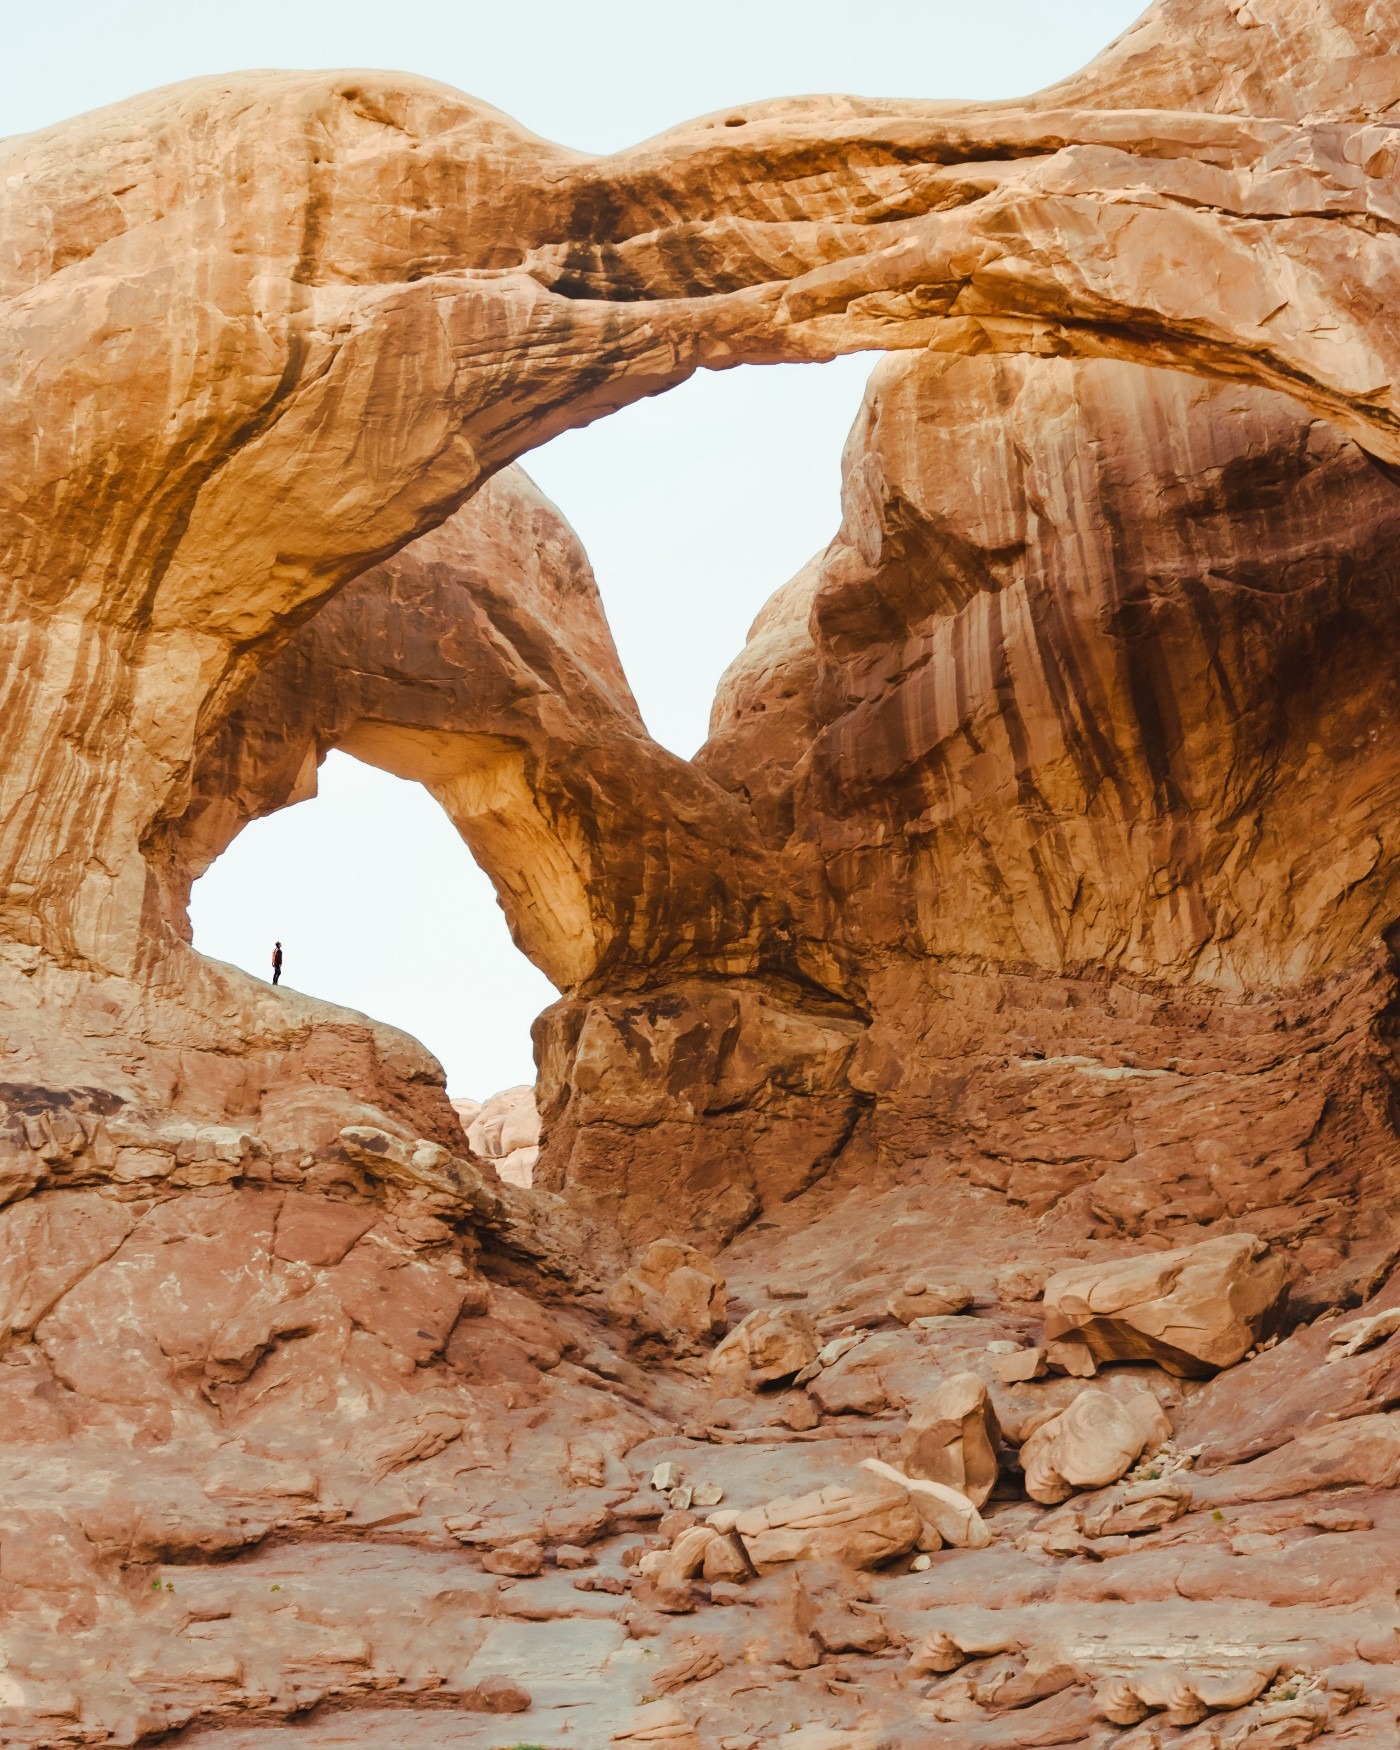 A hiker is standing on a slab of rock looking up at a giant stone arch in Moab, Utah